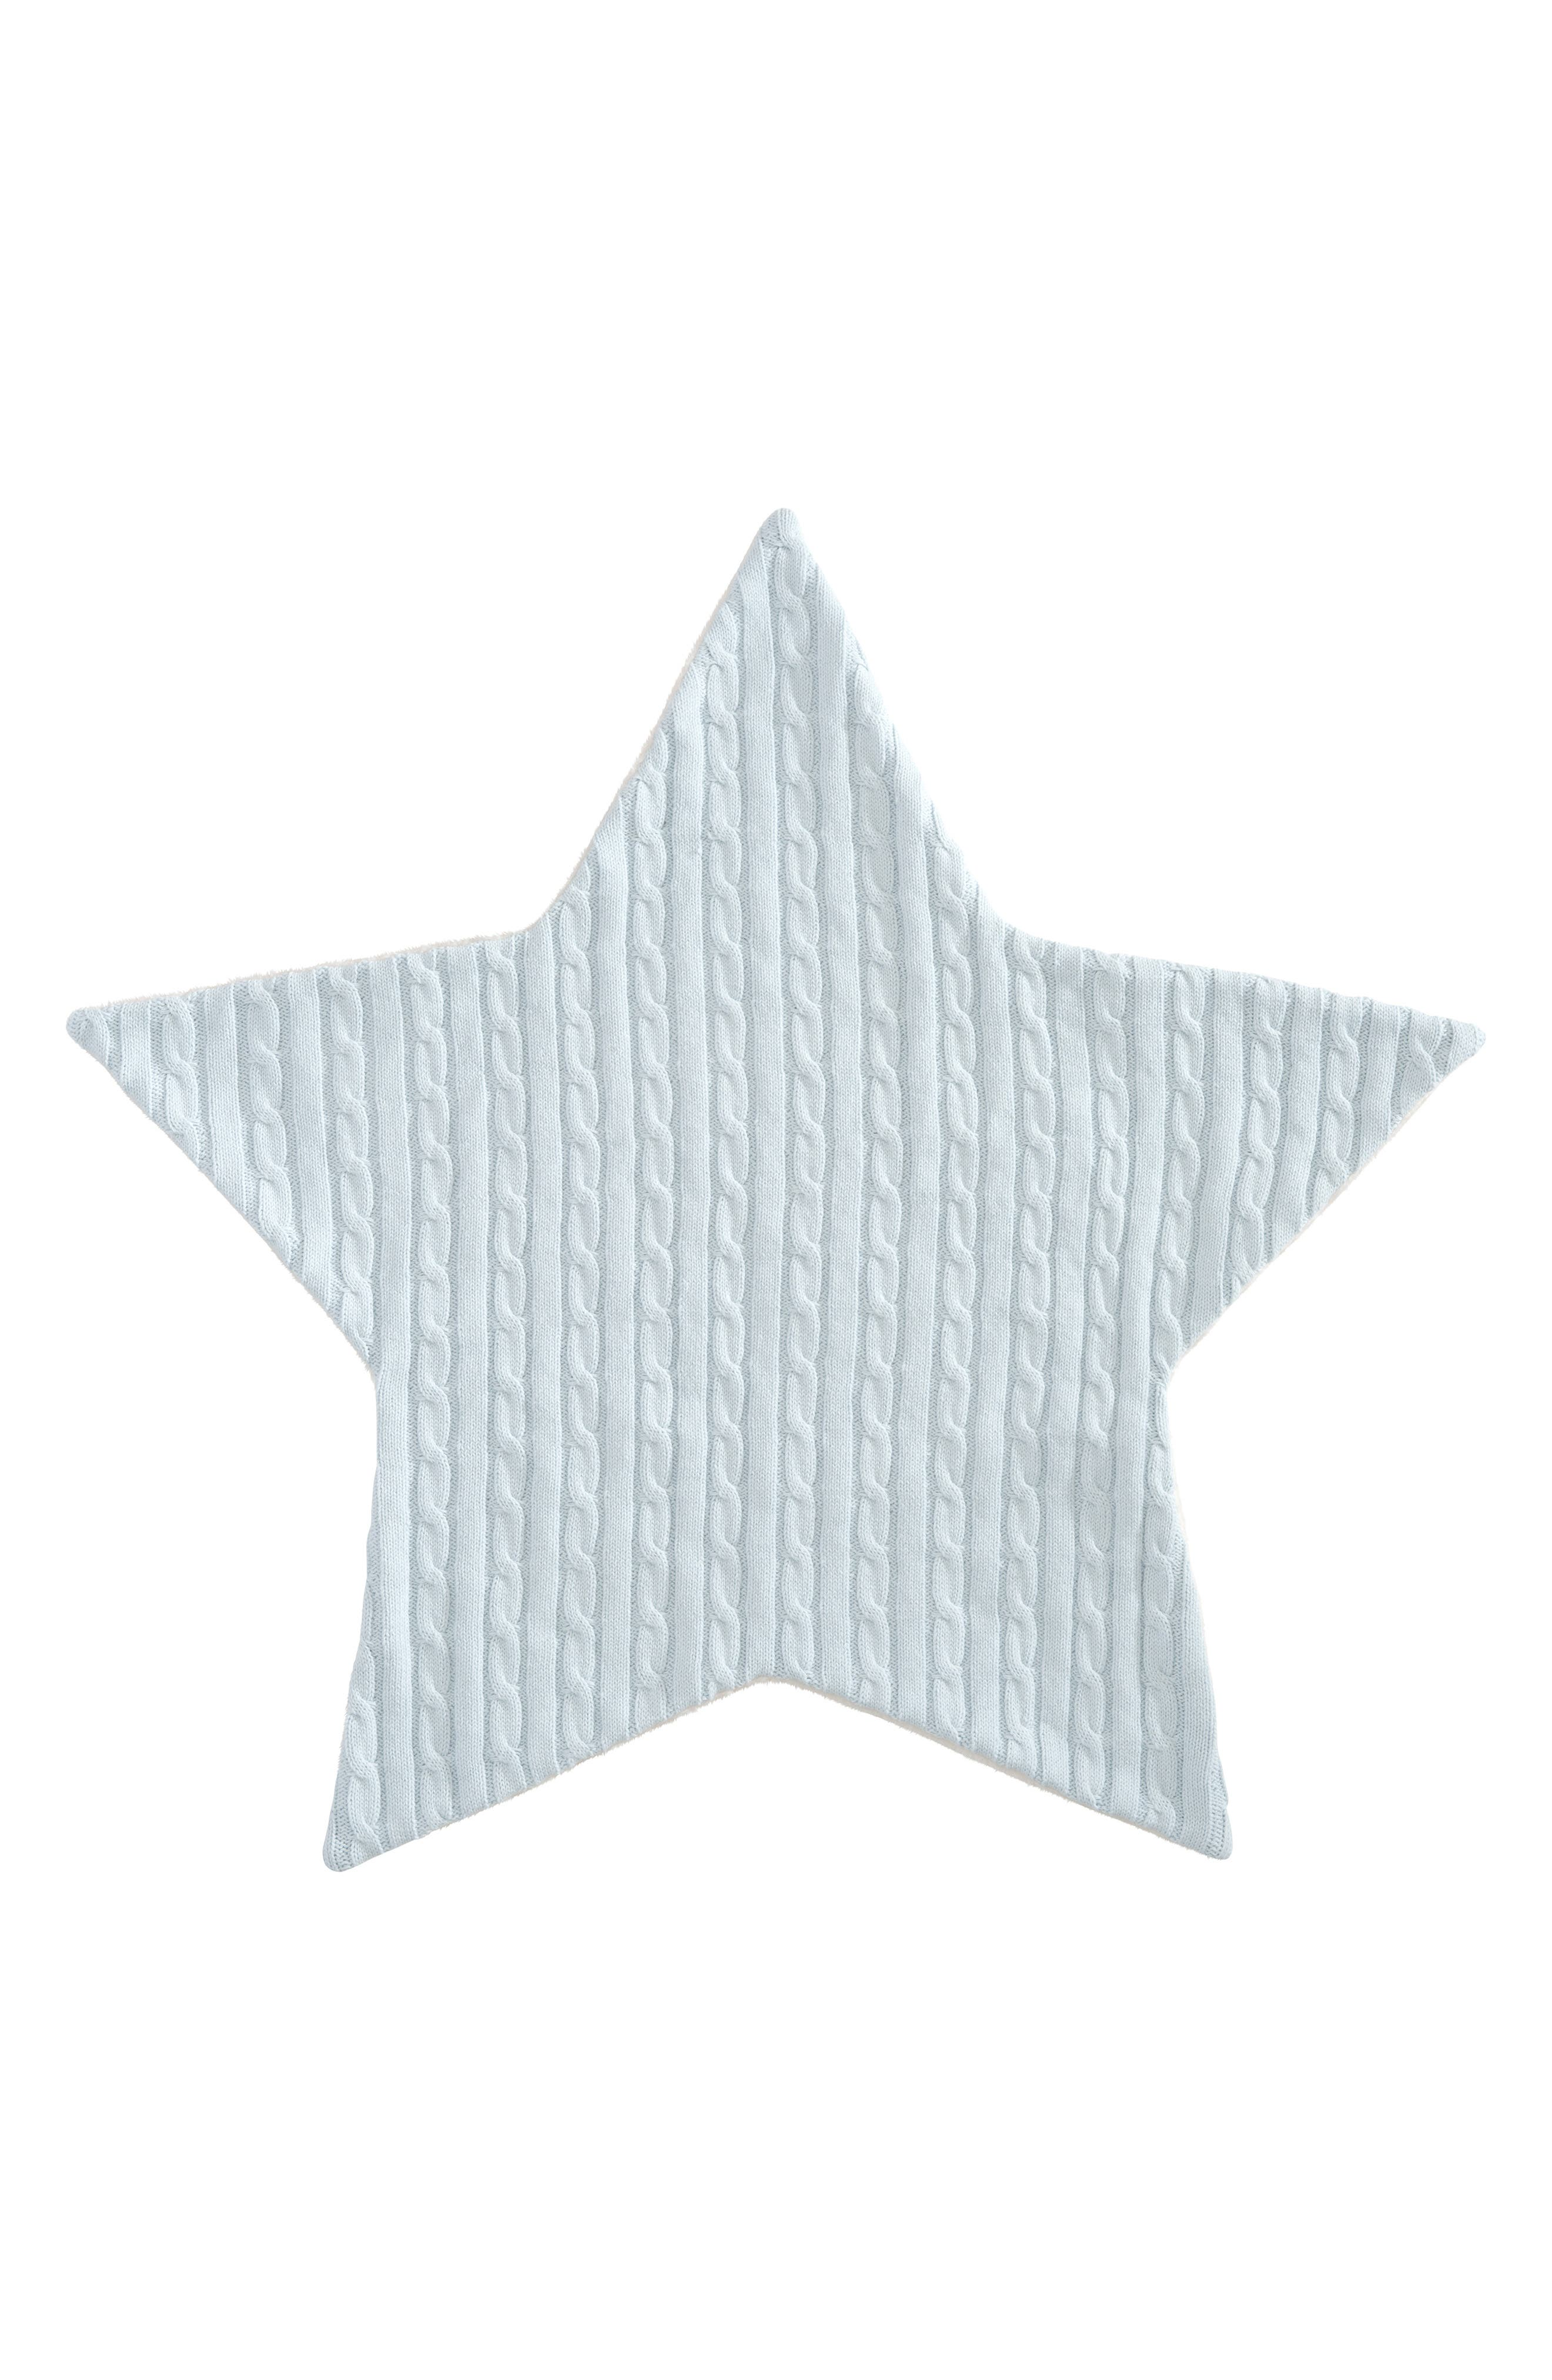 Cable Knit Star Blanket,                             Alternate thumbnail 8, color,